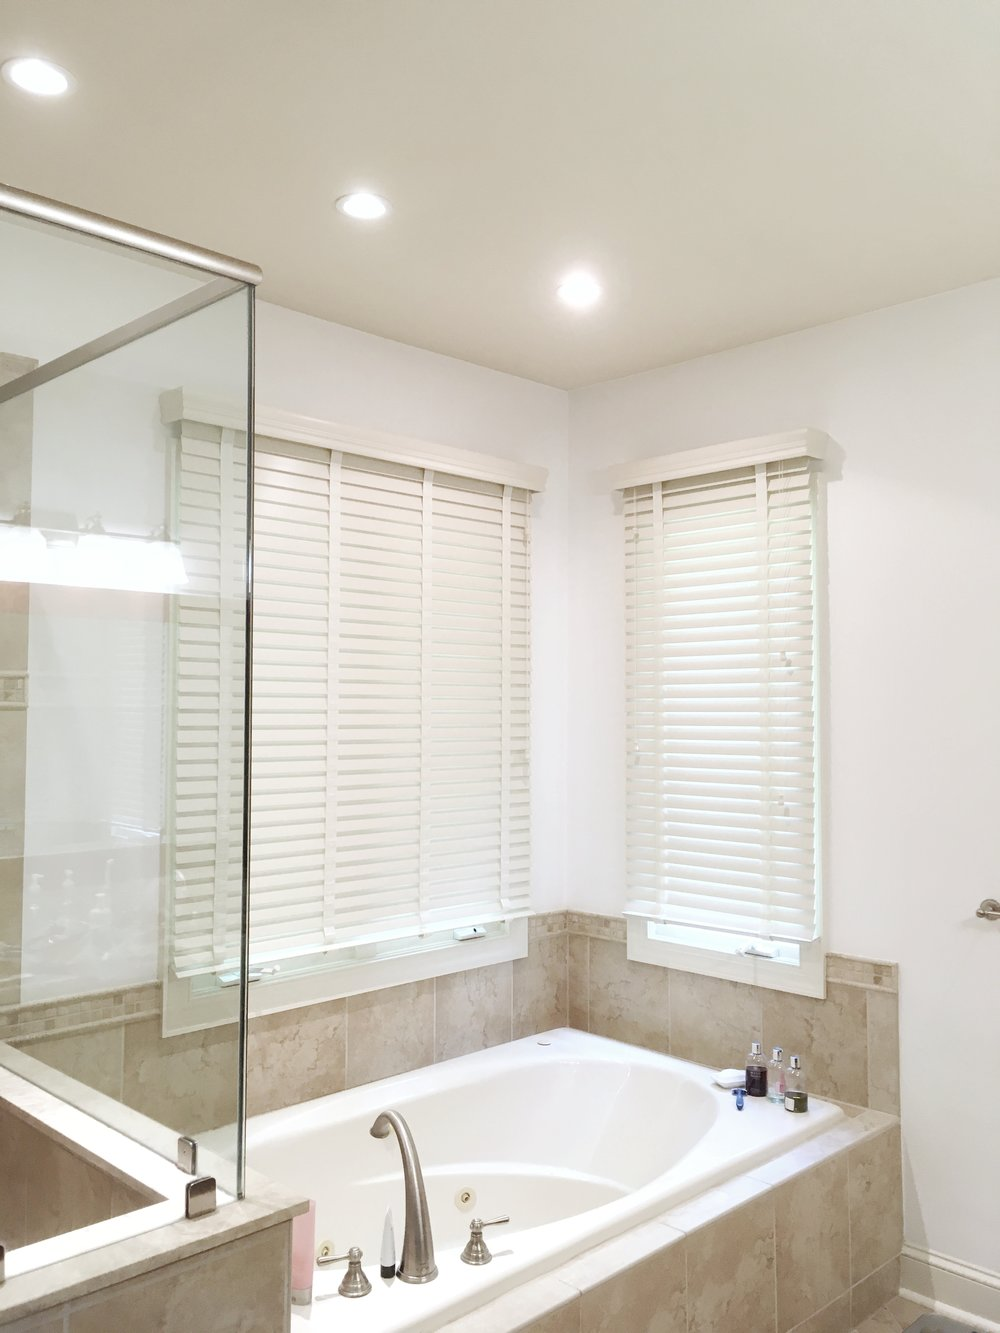 Bathroom with spa tub and 3rdGenBlinds custom window blinds